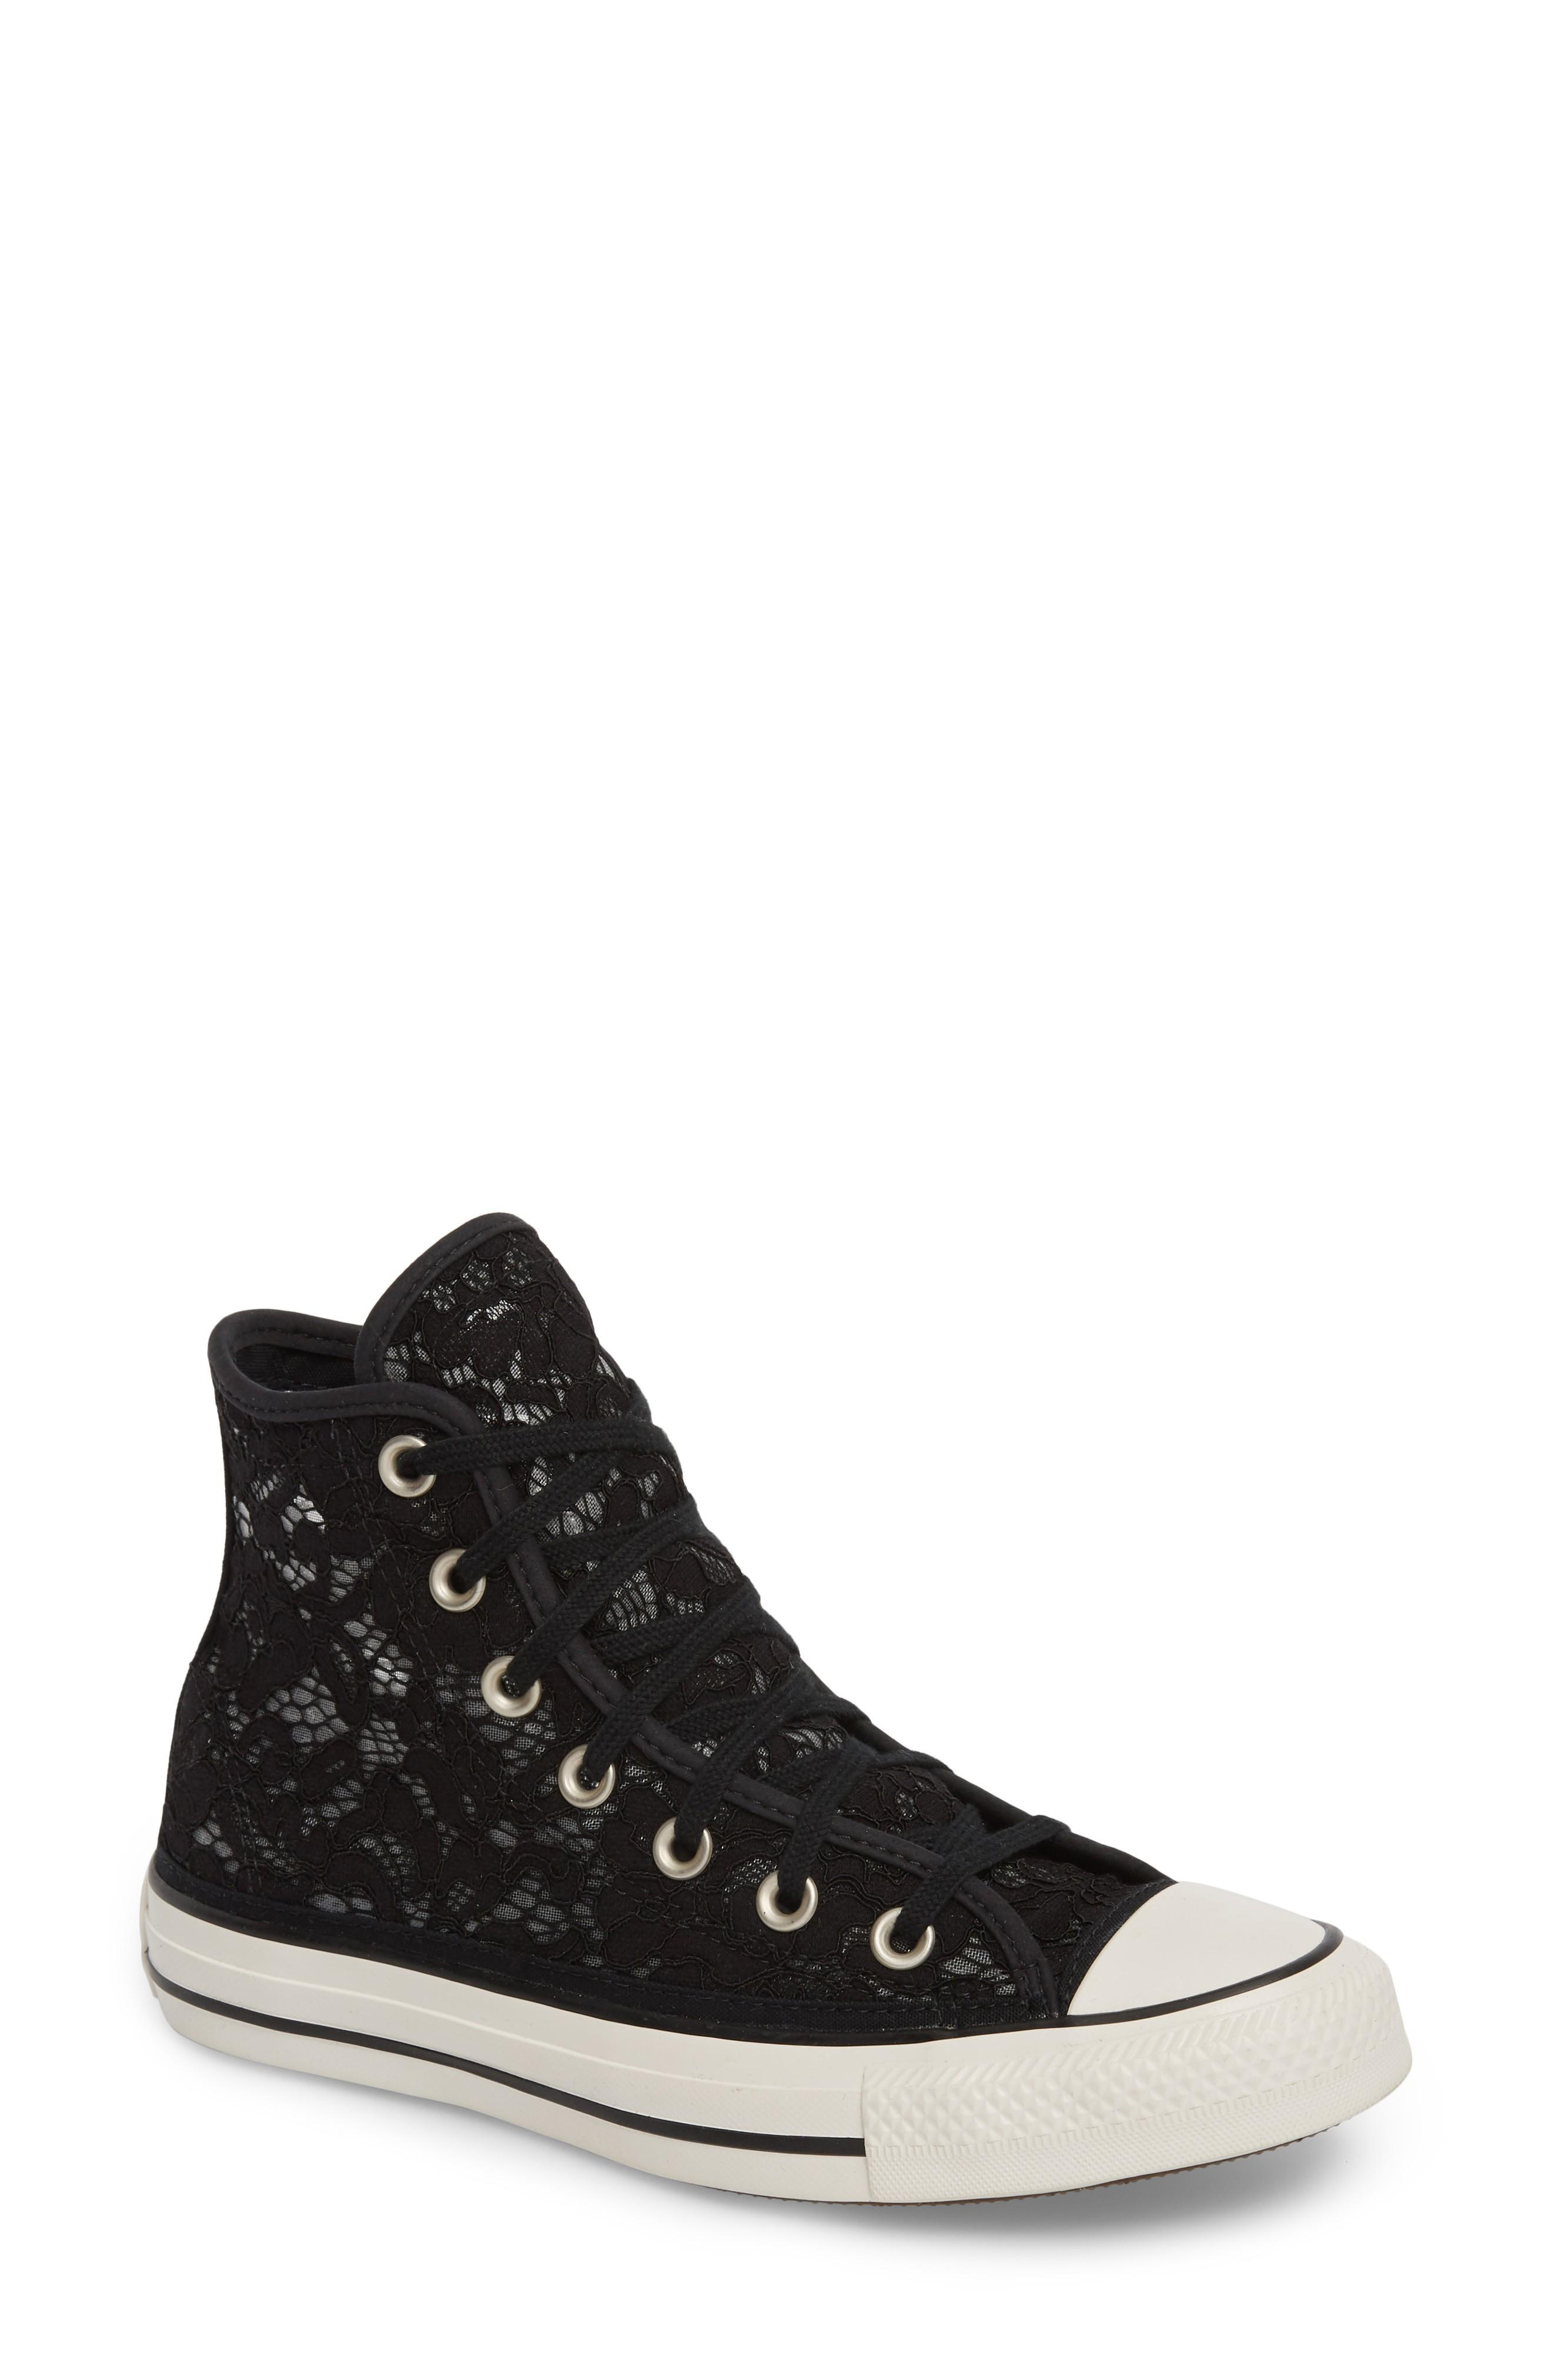 deee7ec47c3eab Converse Chuck Taylor All Star Lace High-Top Sneaker In Black  White ...